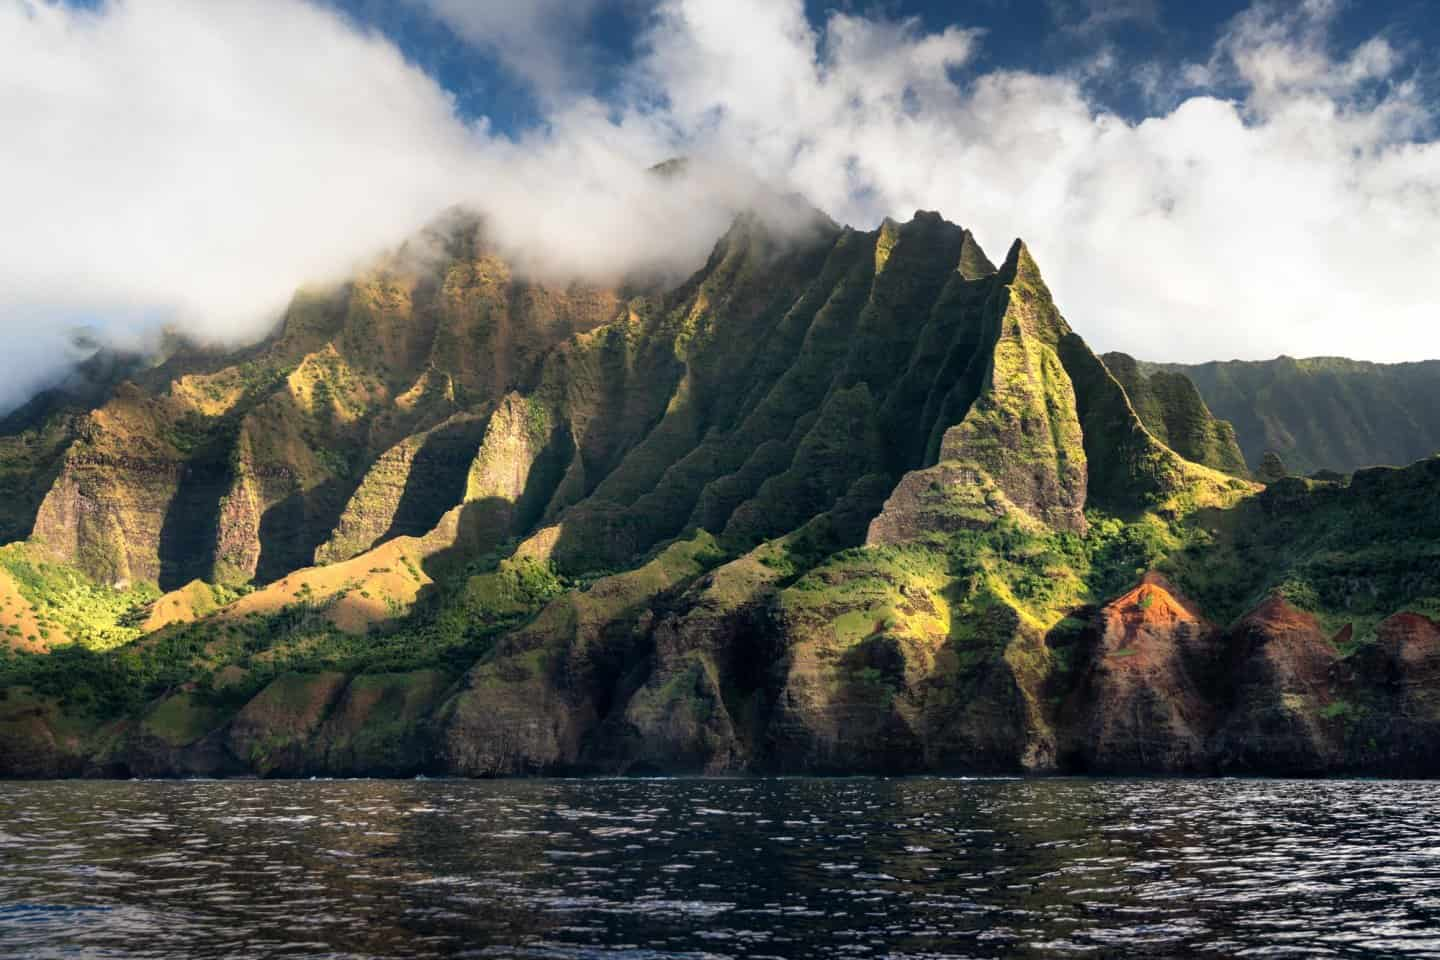 Golden hour light creates beautiful contrast on the Napali Cliffs just prior to sunset in Kauai.